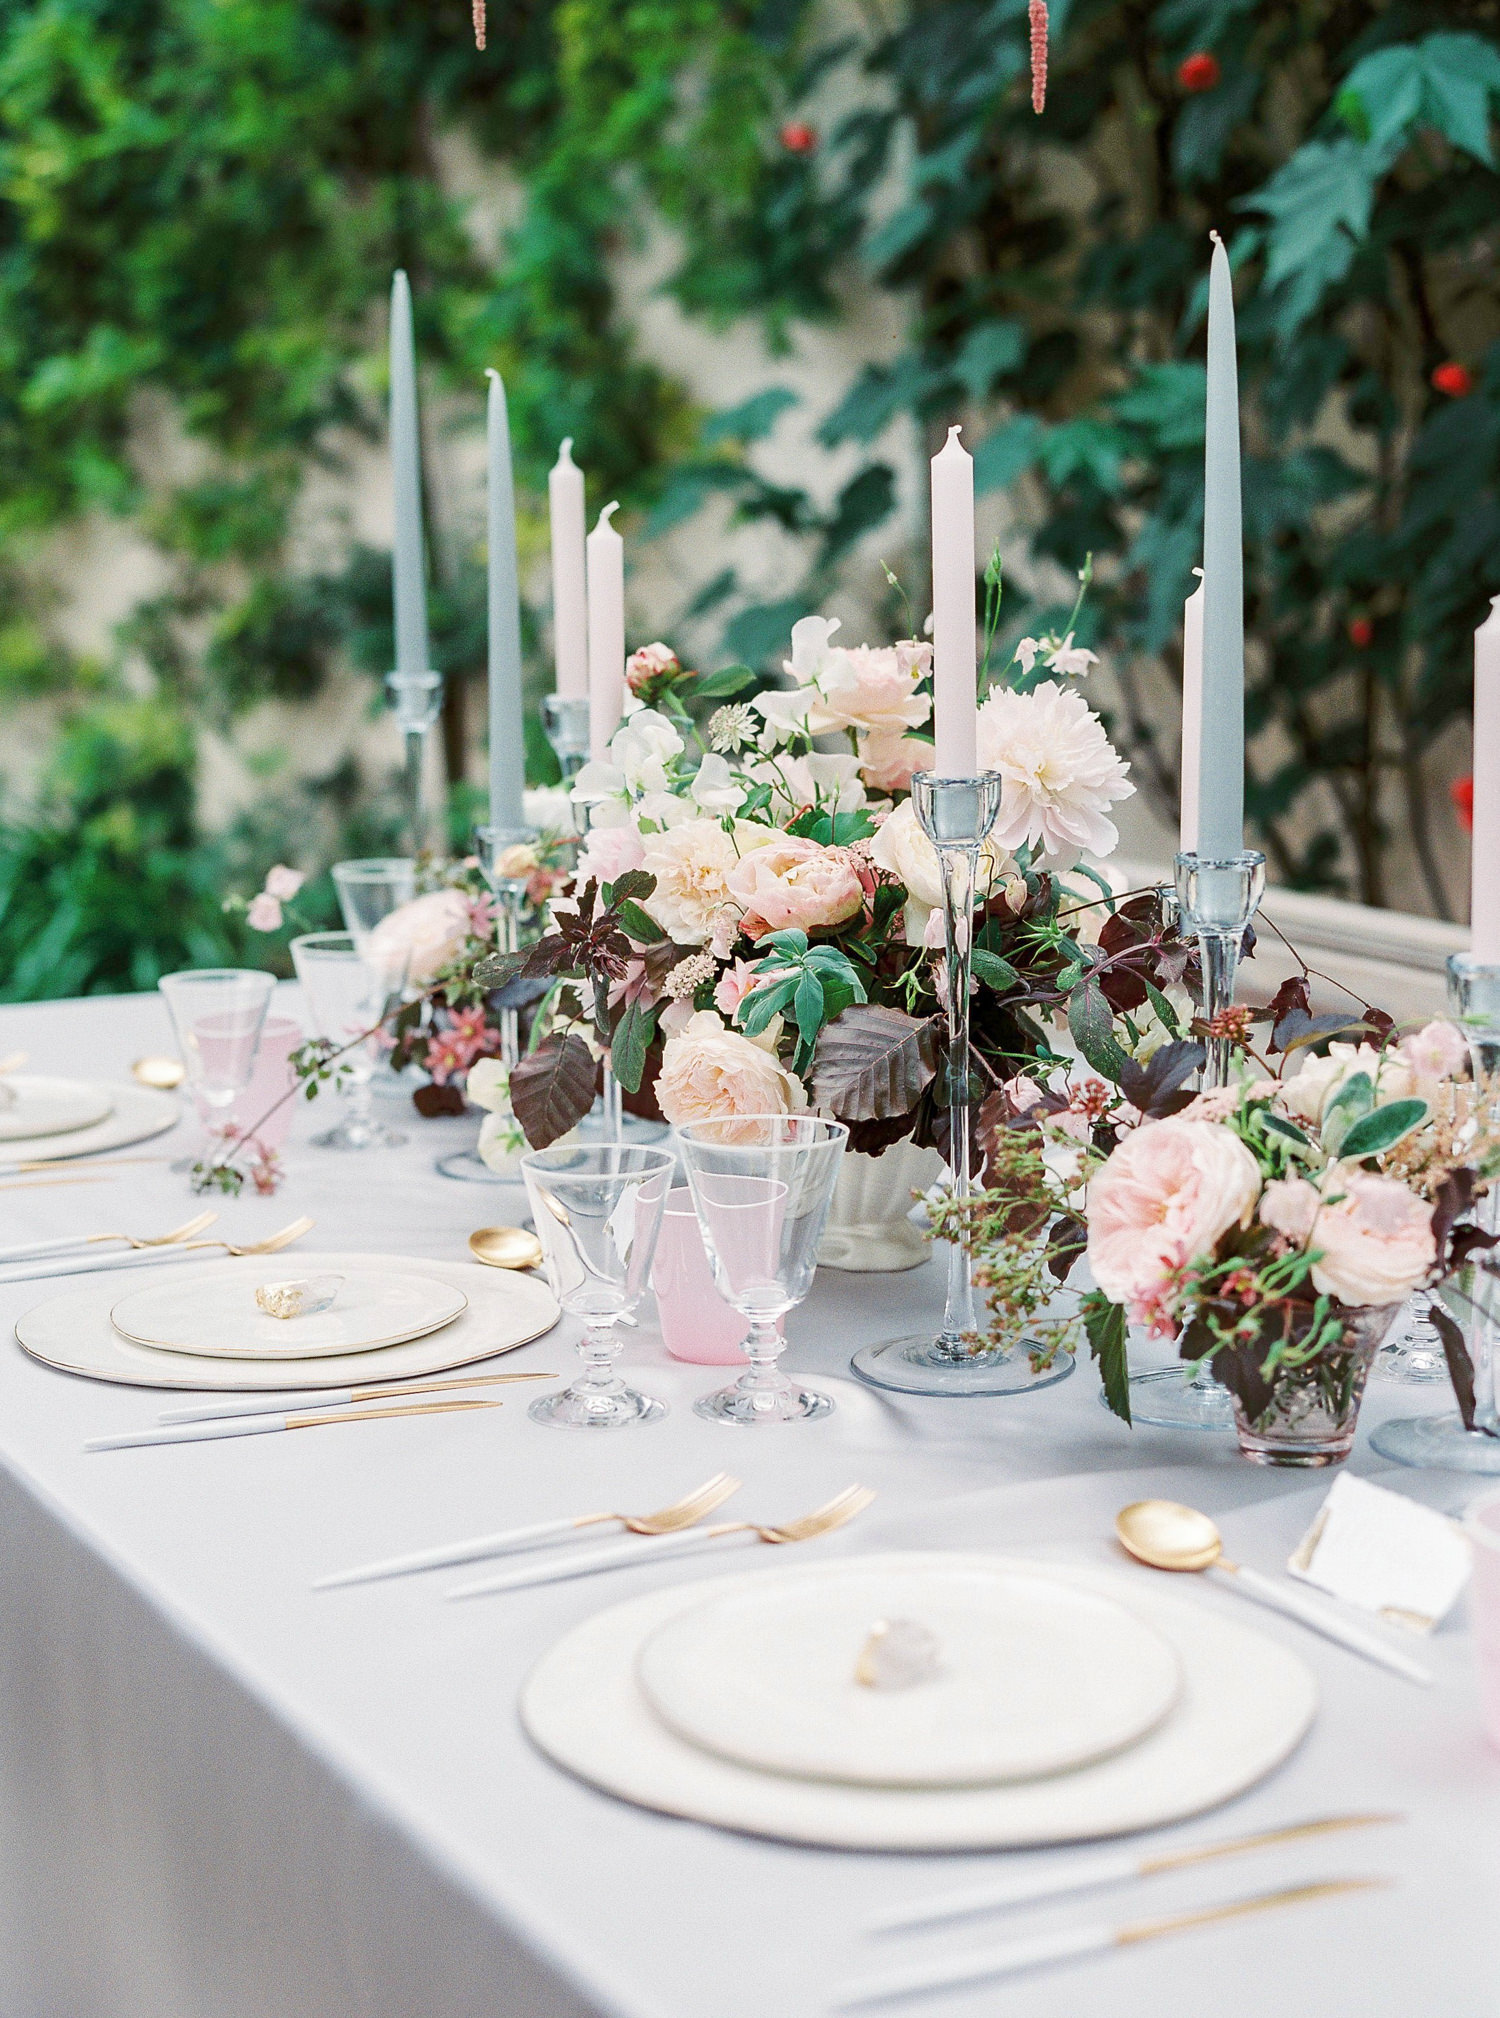 Lucy Davenport Photography, Sezincote House & Gardens, wedding venue, Cotswolds, Sezincote wedding, bench at tablescape, orangery, crockery and stationery.